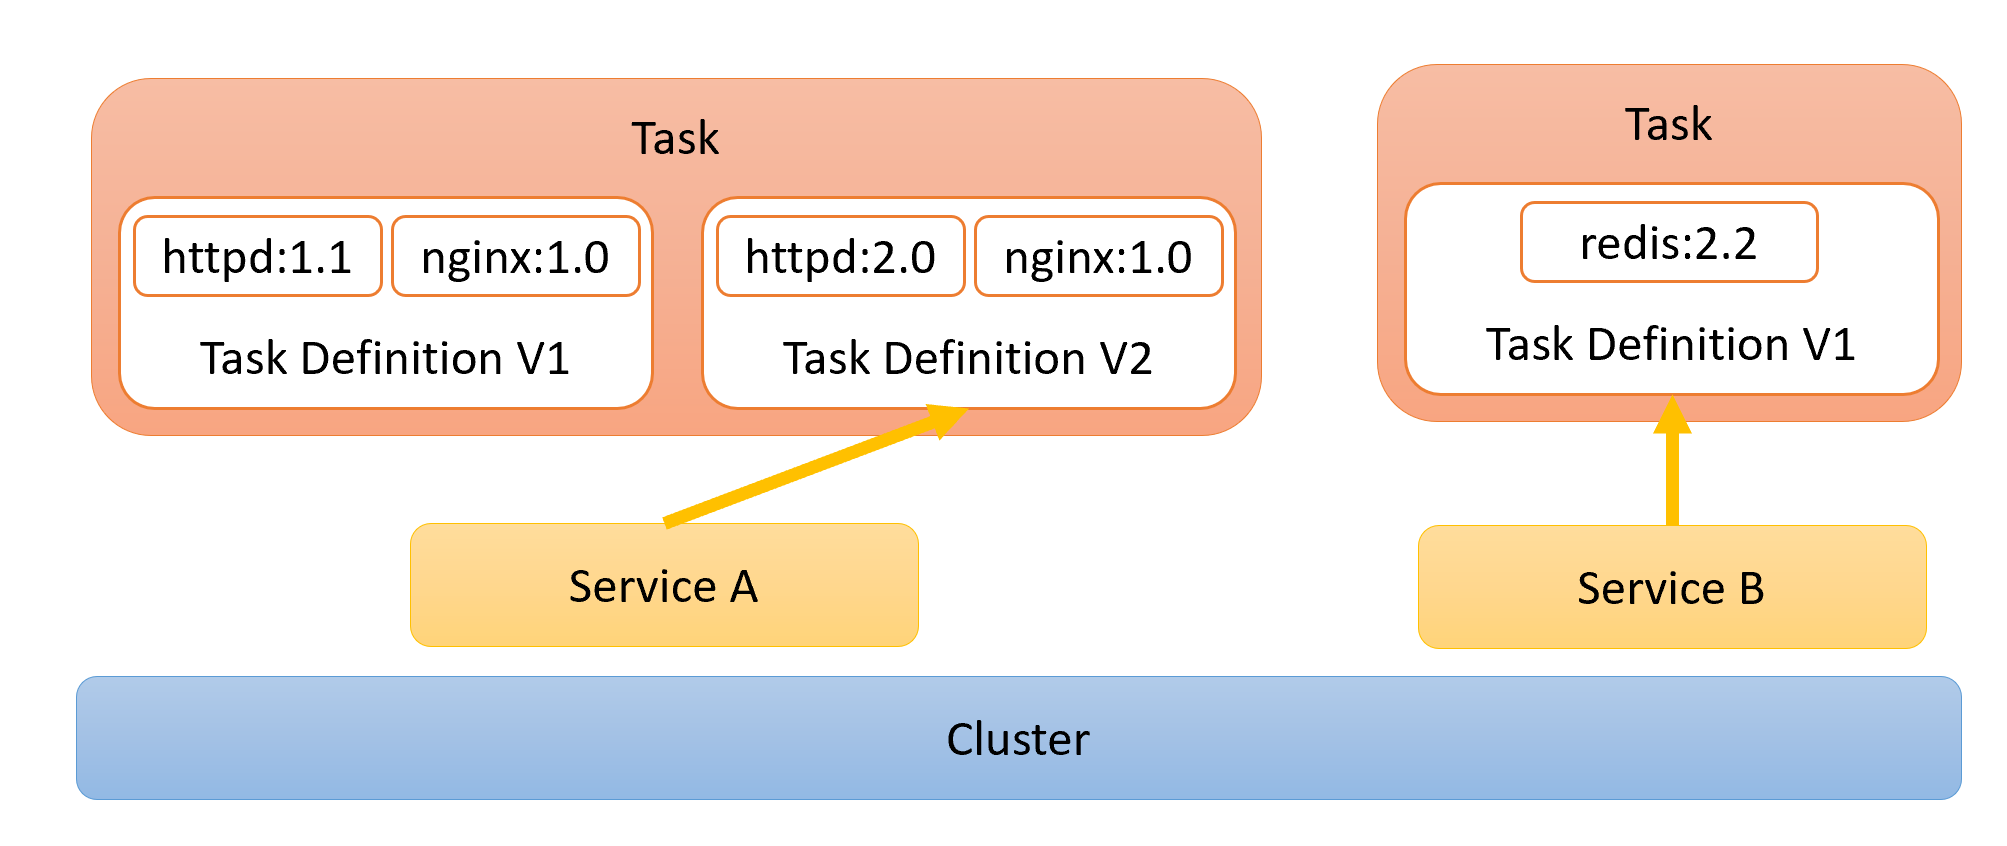 Tasks, Services, and Clusters